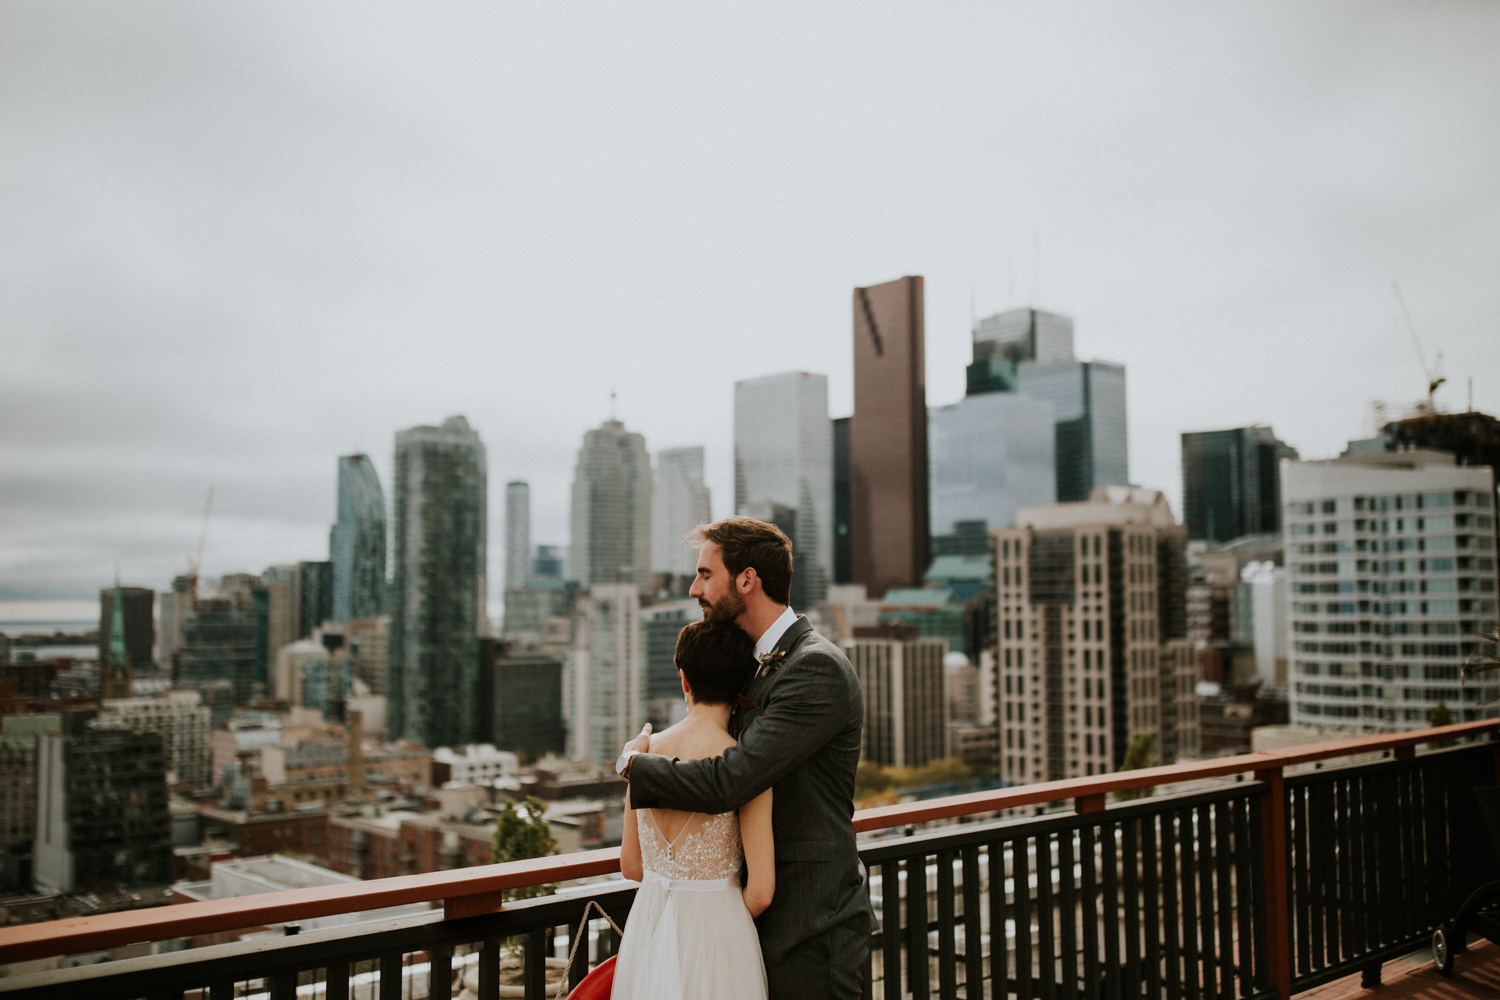 Wedding Questionnaire - Hey! It's almost your big day and I can't wait to be a part of it! Please take some time to go through this questionnaire to make sure I have all the info I need to do the best job possible!